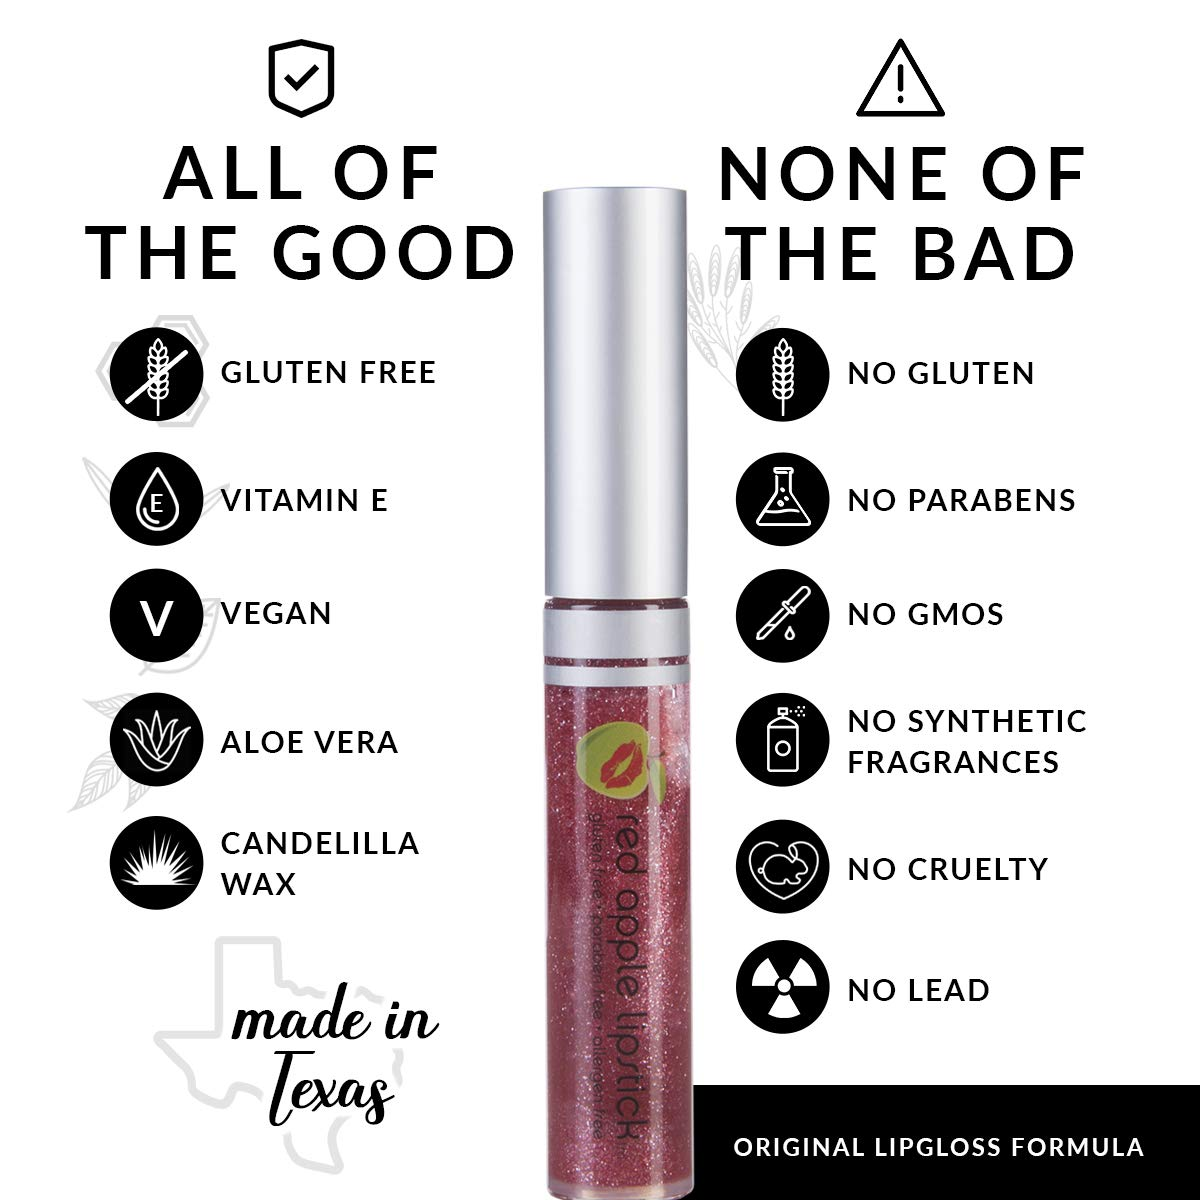 a52ee24ac0c Ruby Glass Gluten Free Lip Gloss by Red Apple Lipstick  Amazon.co.uk  Beauty